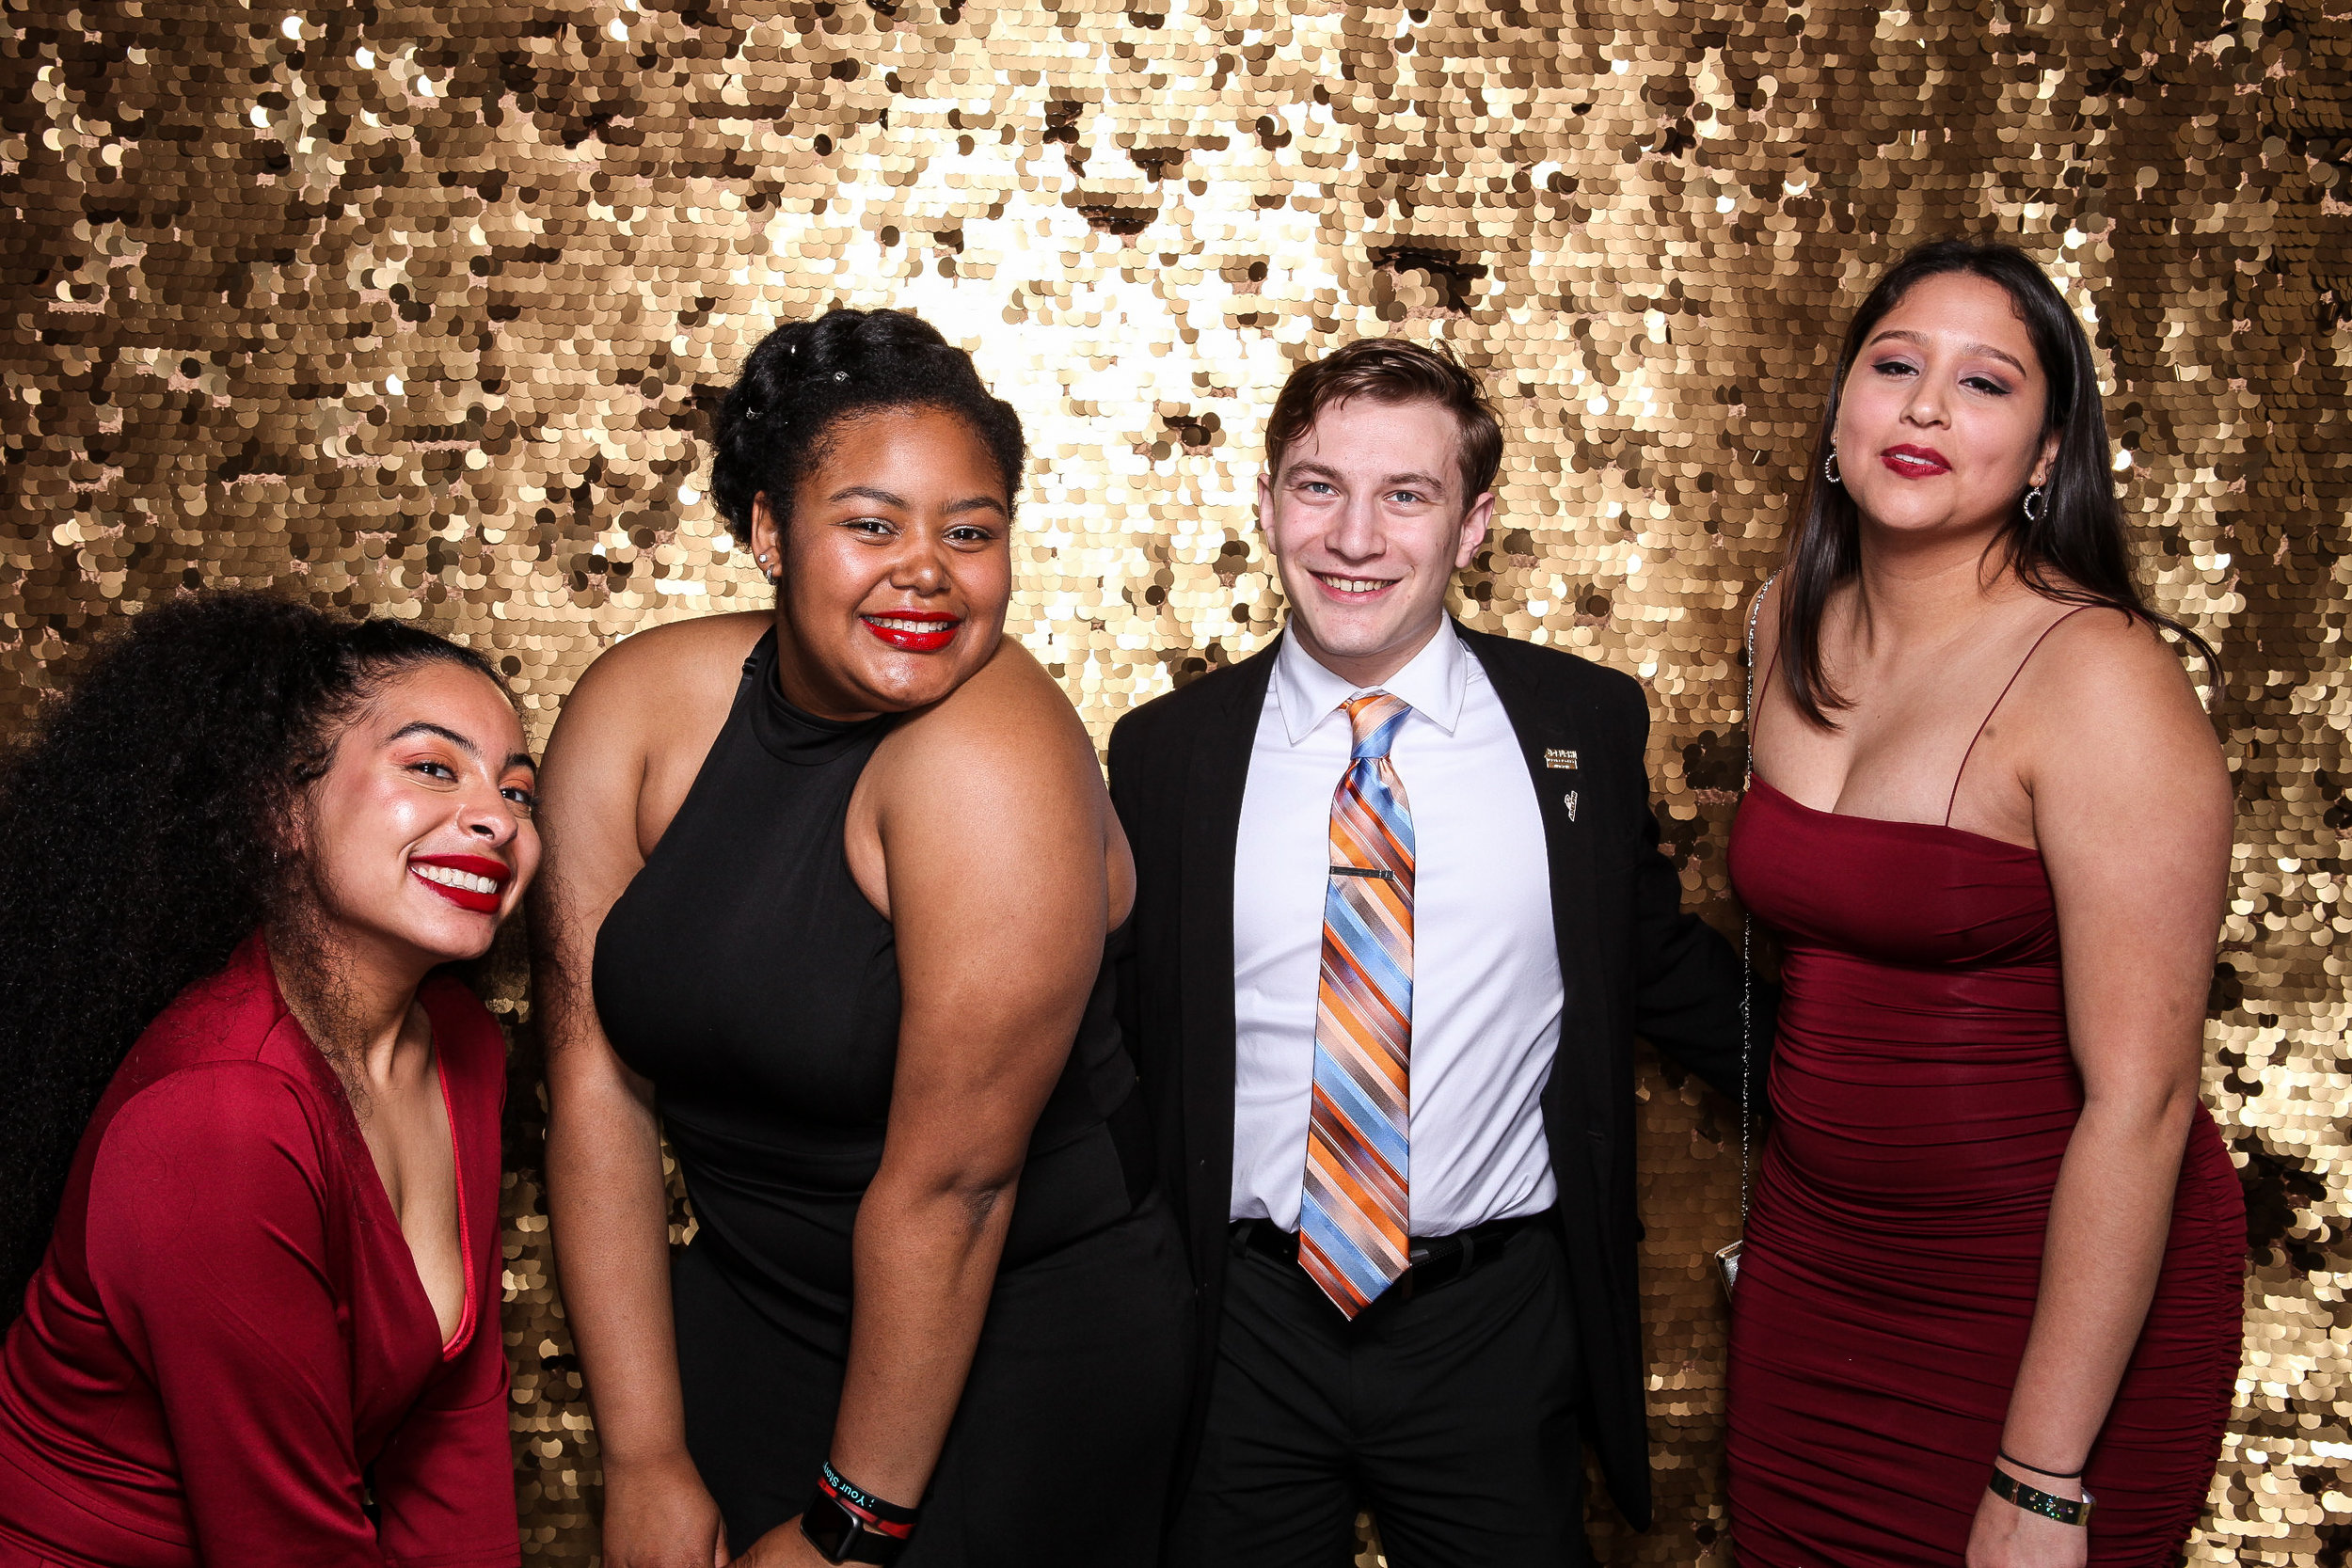 20190503_Adelphi_Senior_Formal-402.jpg